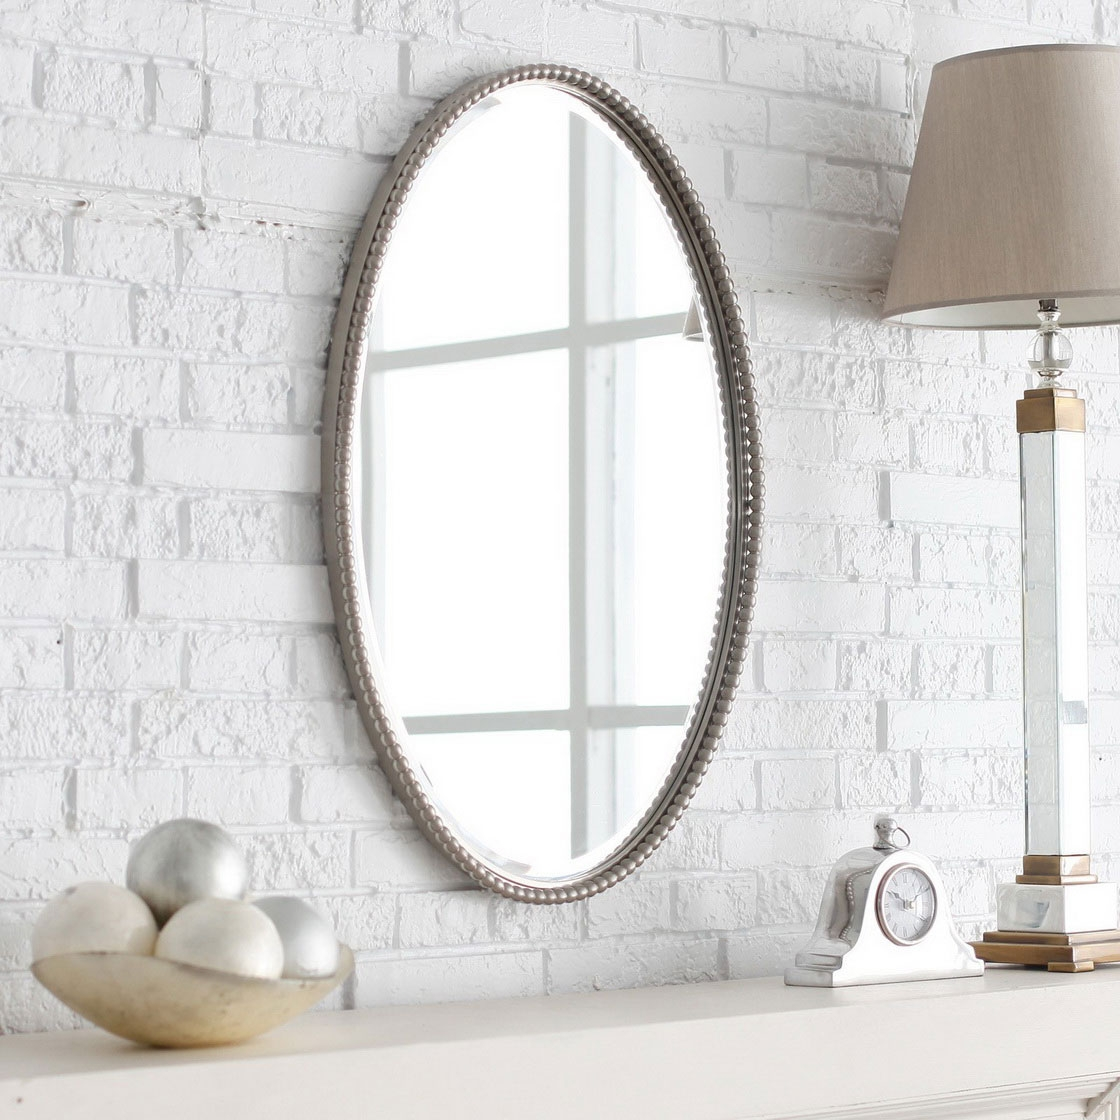 Large Oval Mirror For Bathroom